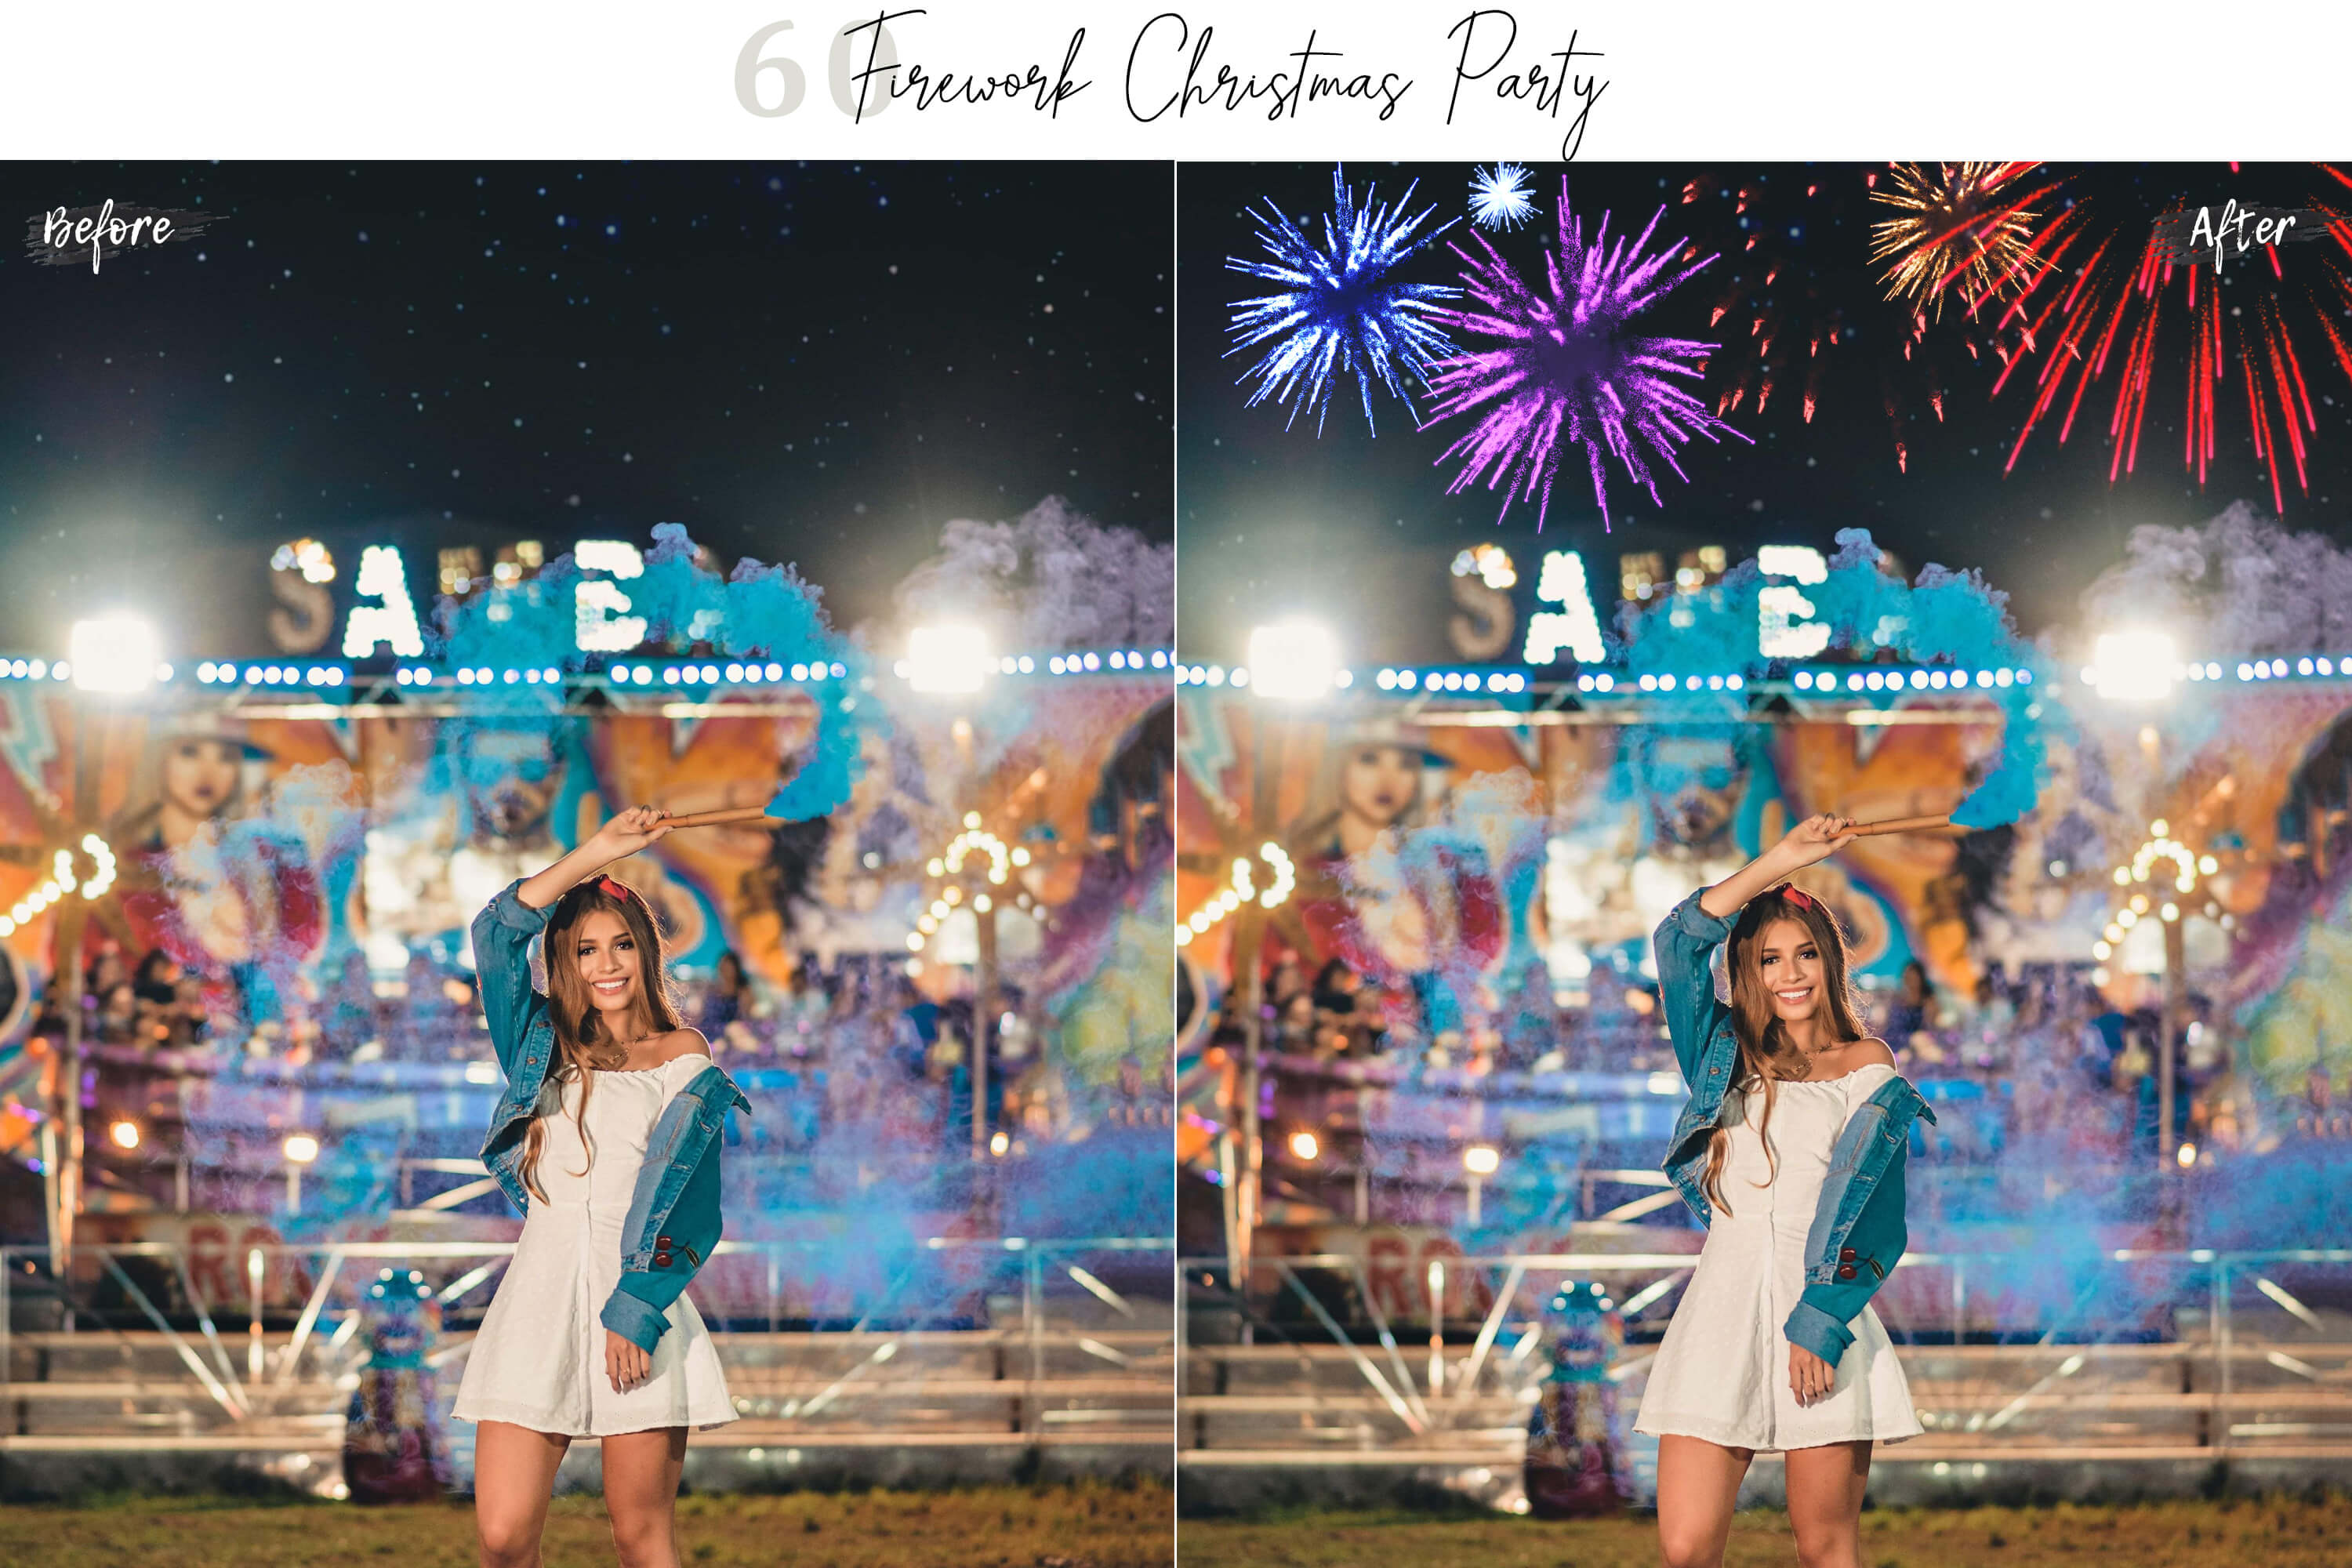 60 Firework Christmas Party Overlays example image 4